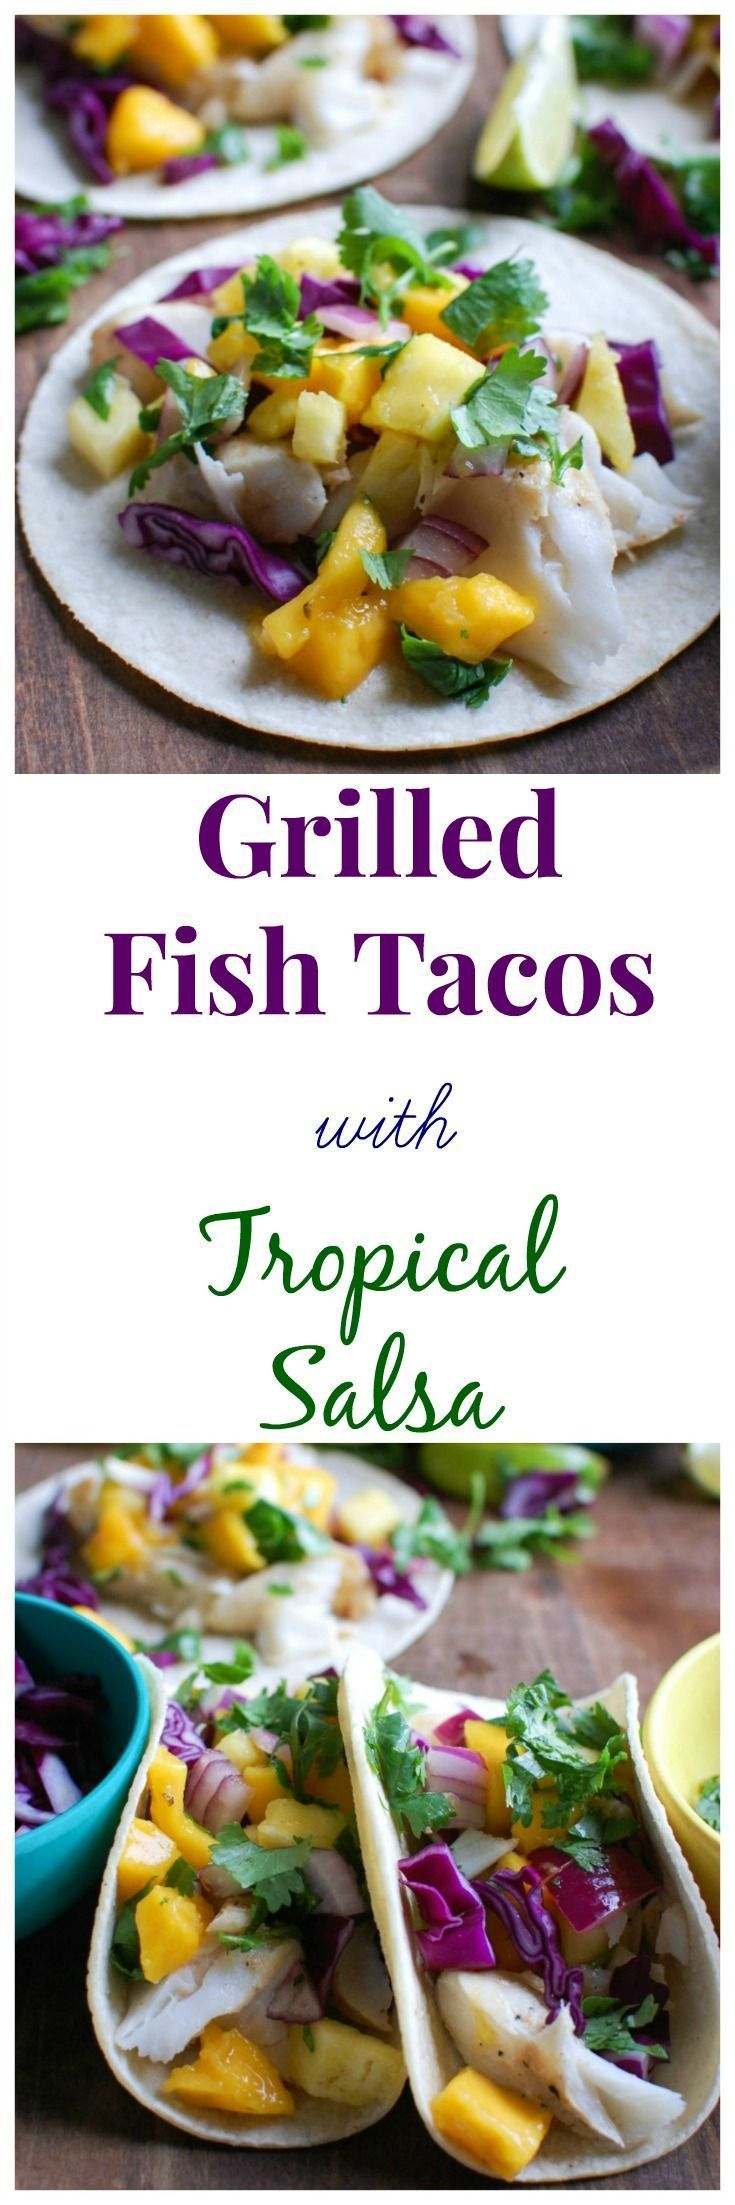 Grilled Fish Tacos with Tropical Salsa are light, fresh and perfect for your summer taco night and a great way to get healthy Omega 3s without that fish smell in your home. Cod is marinated in tropical flavors, grilled to create a flavorful fish taco.  Mango, pineapple, cilantro, red onion and lime juice create the perfect tropical salsa to top your tacos! // A Cedar Spoon